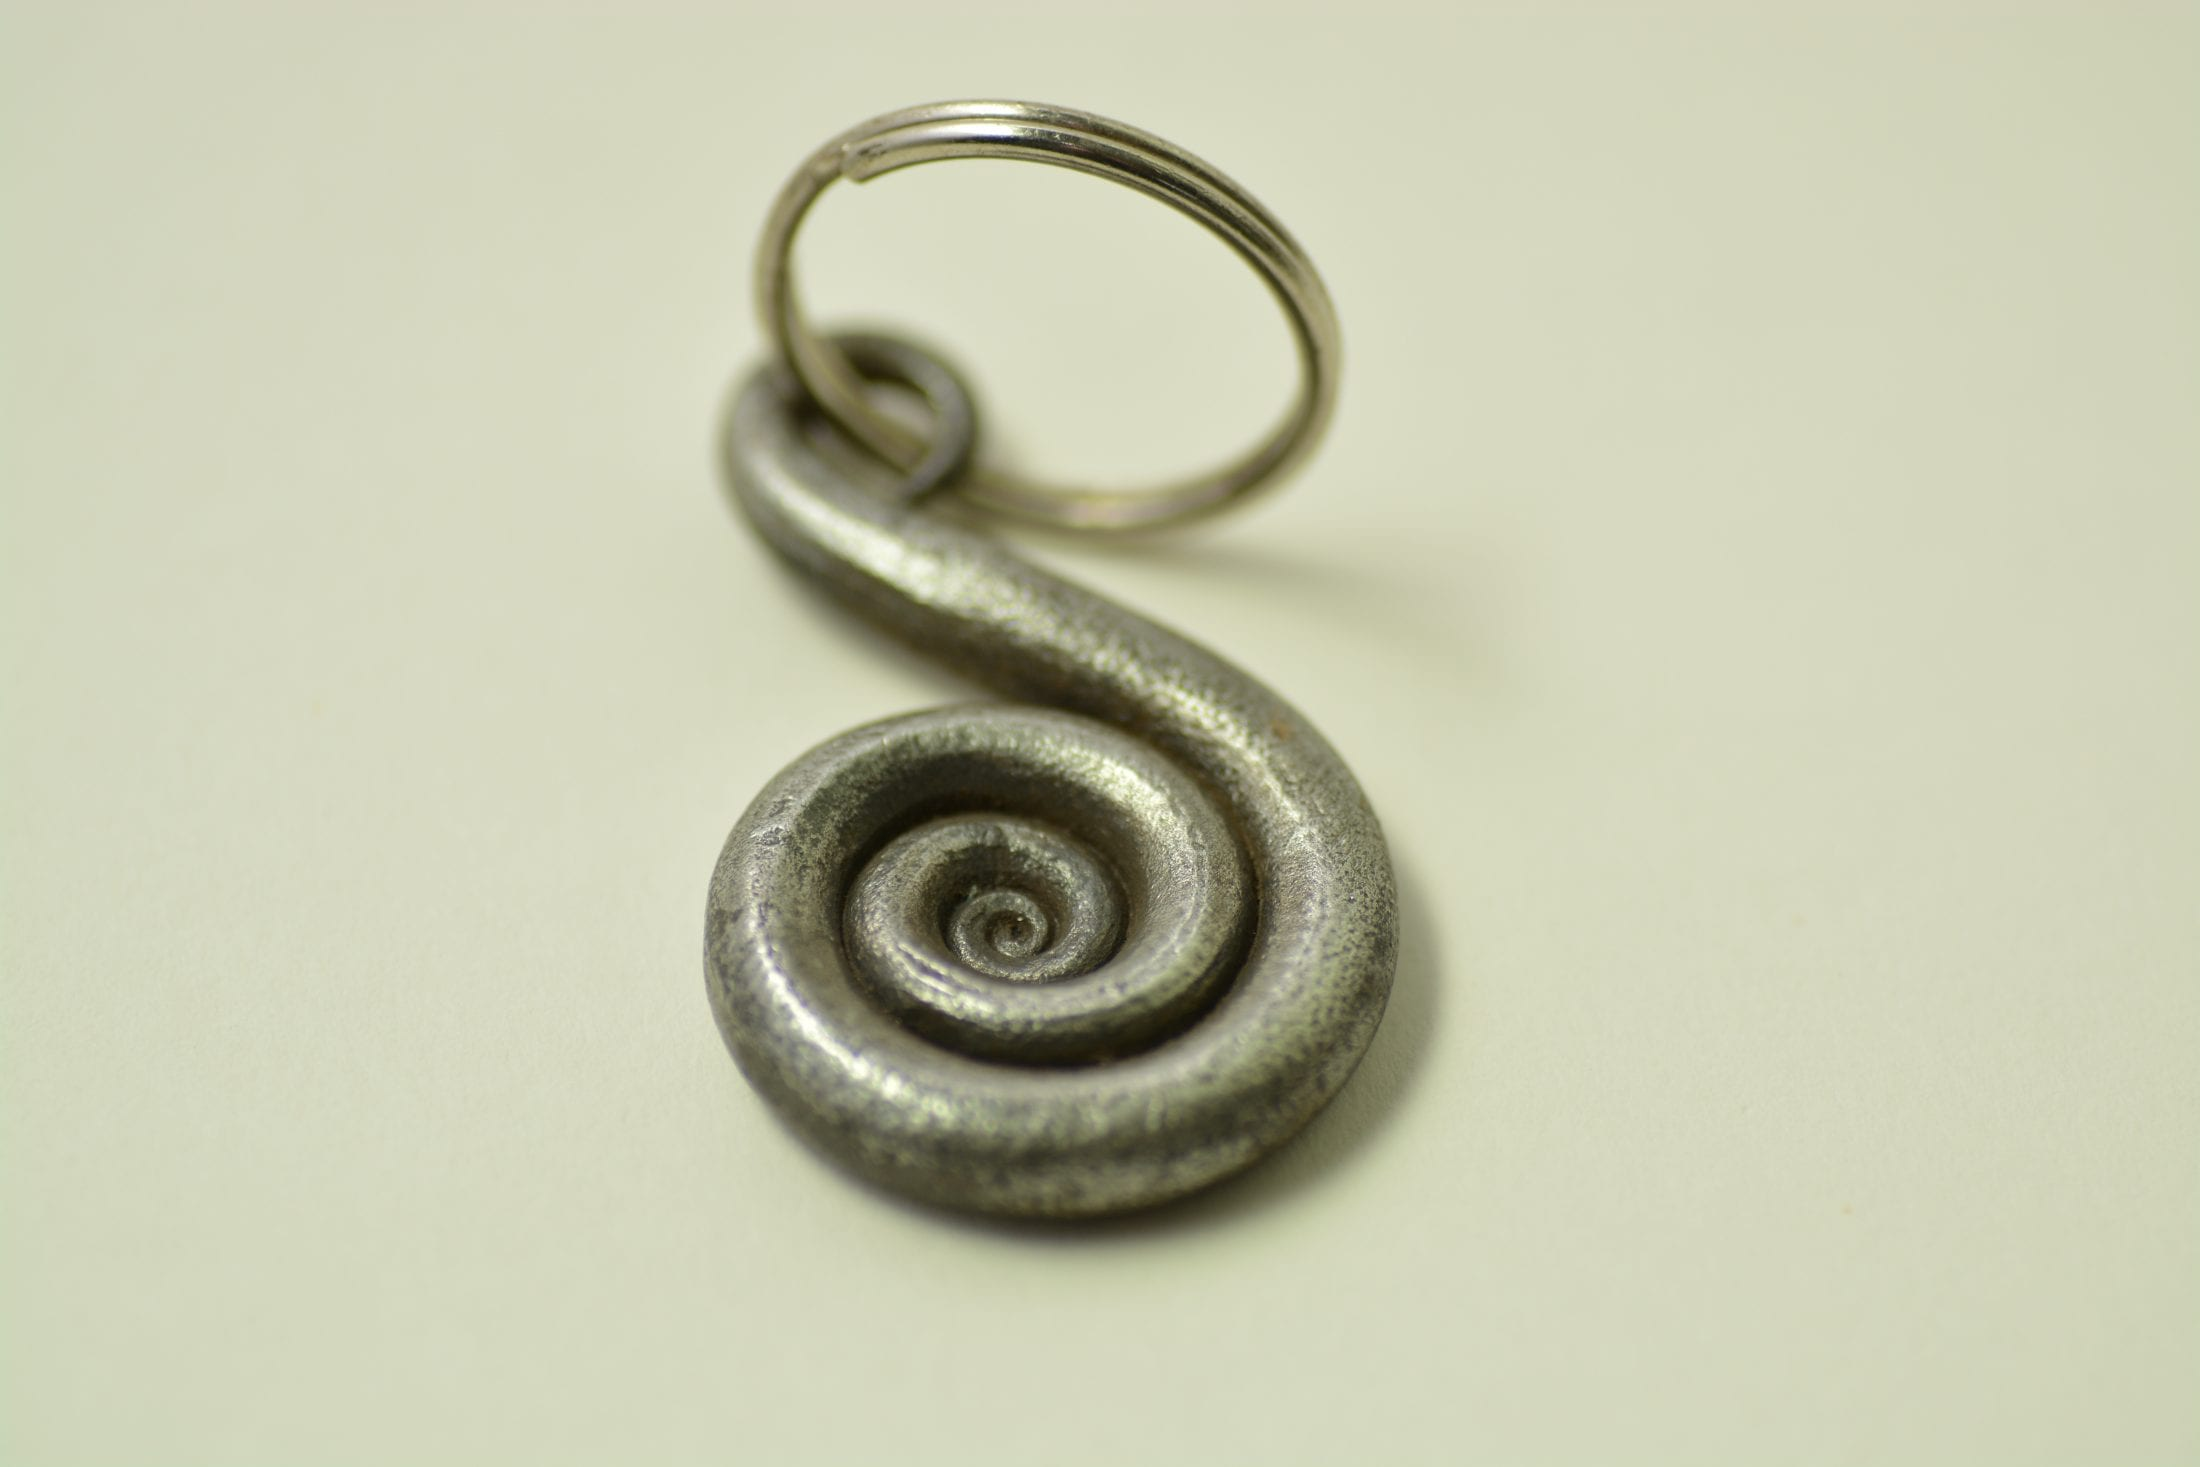 Hand forged keyring, scroll, spriral, unusal gifts, stocking fillers, gifts for him, gifts for her, stylish keyring